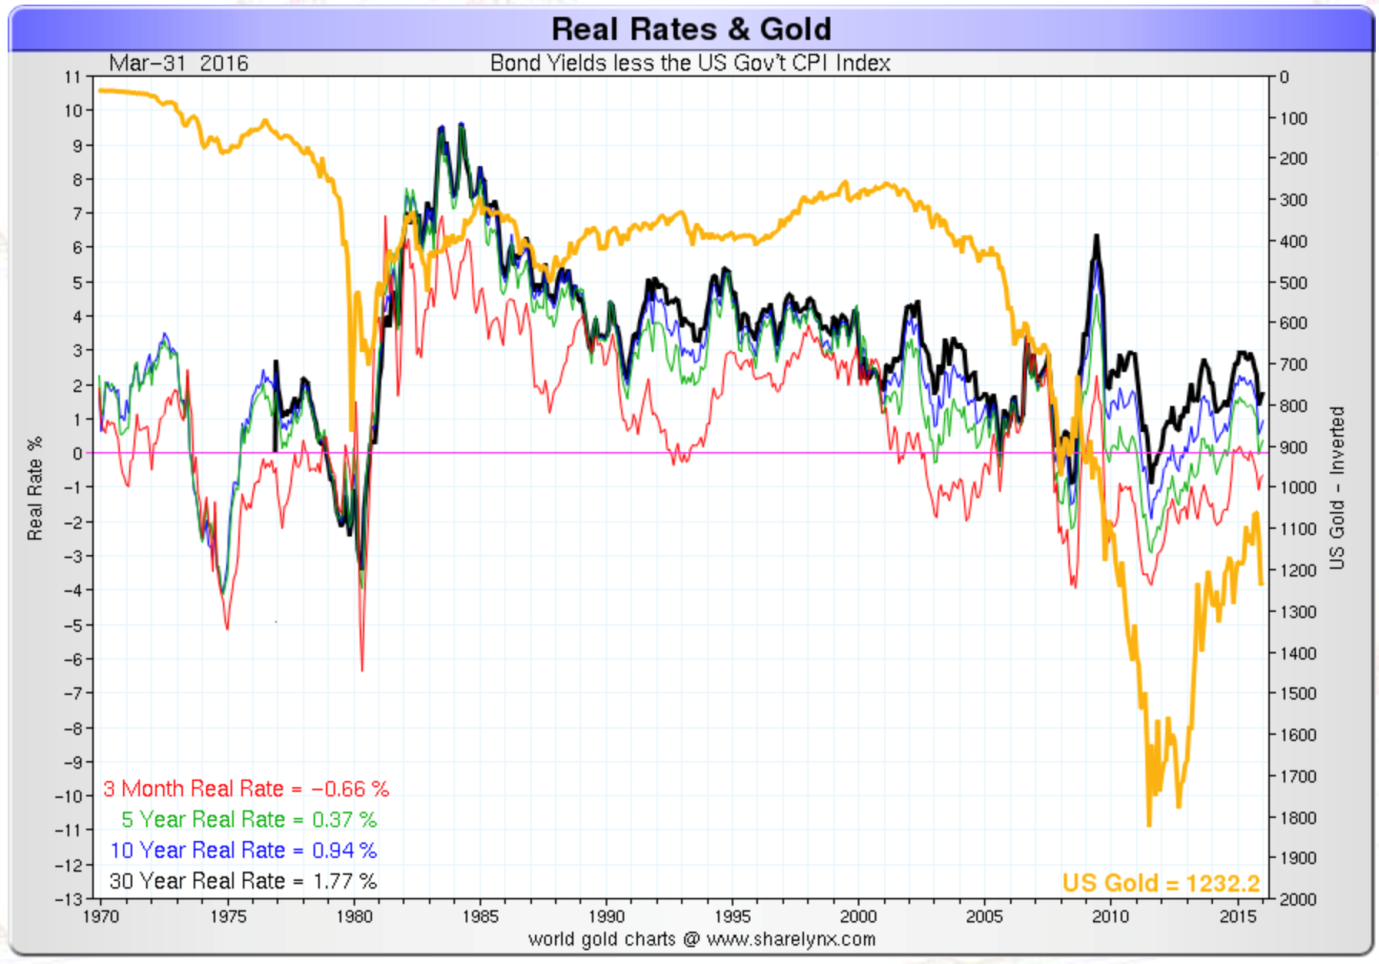 Real rates & gold